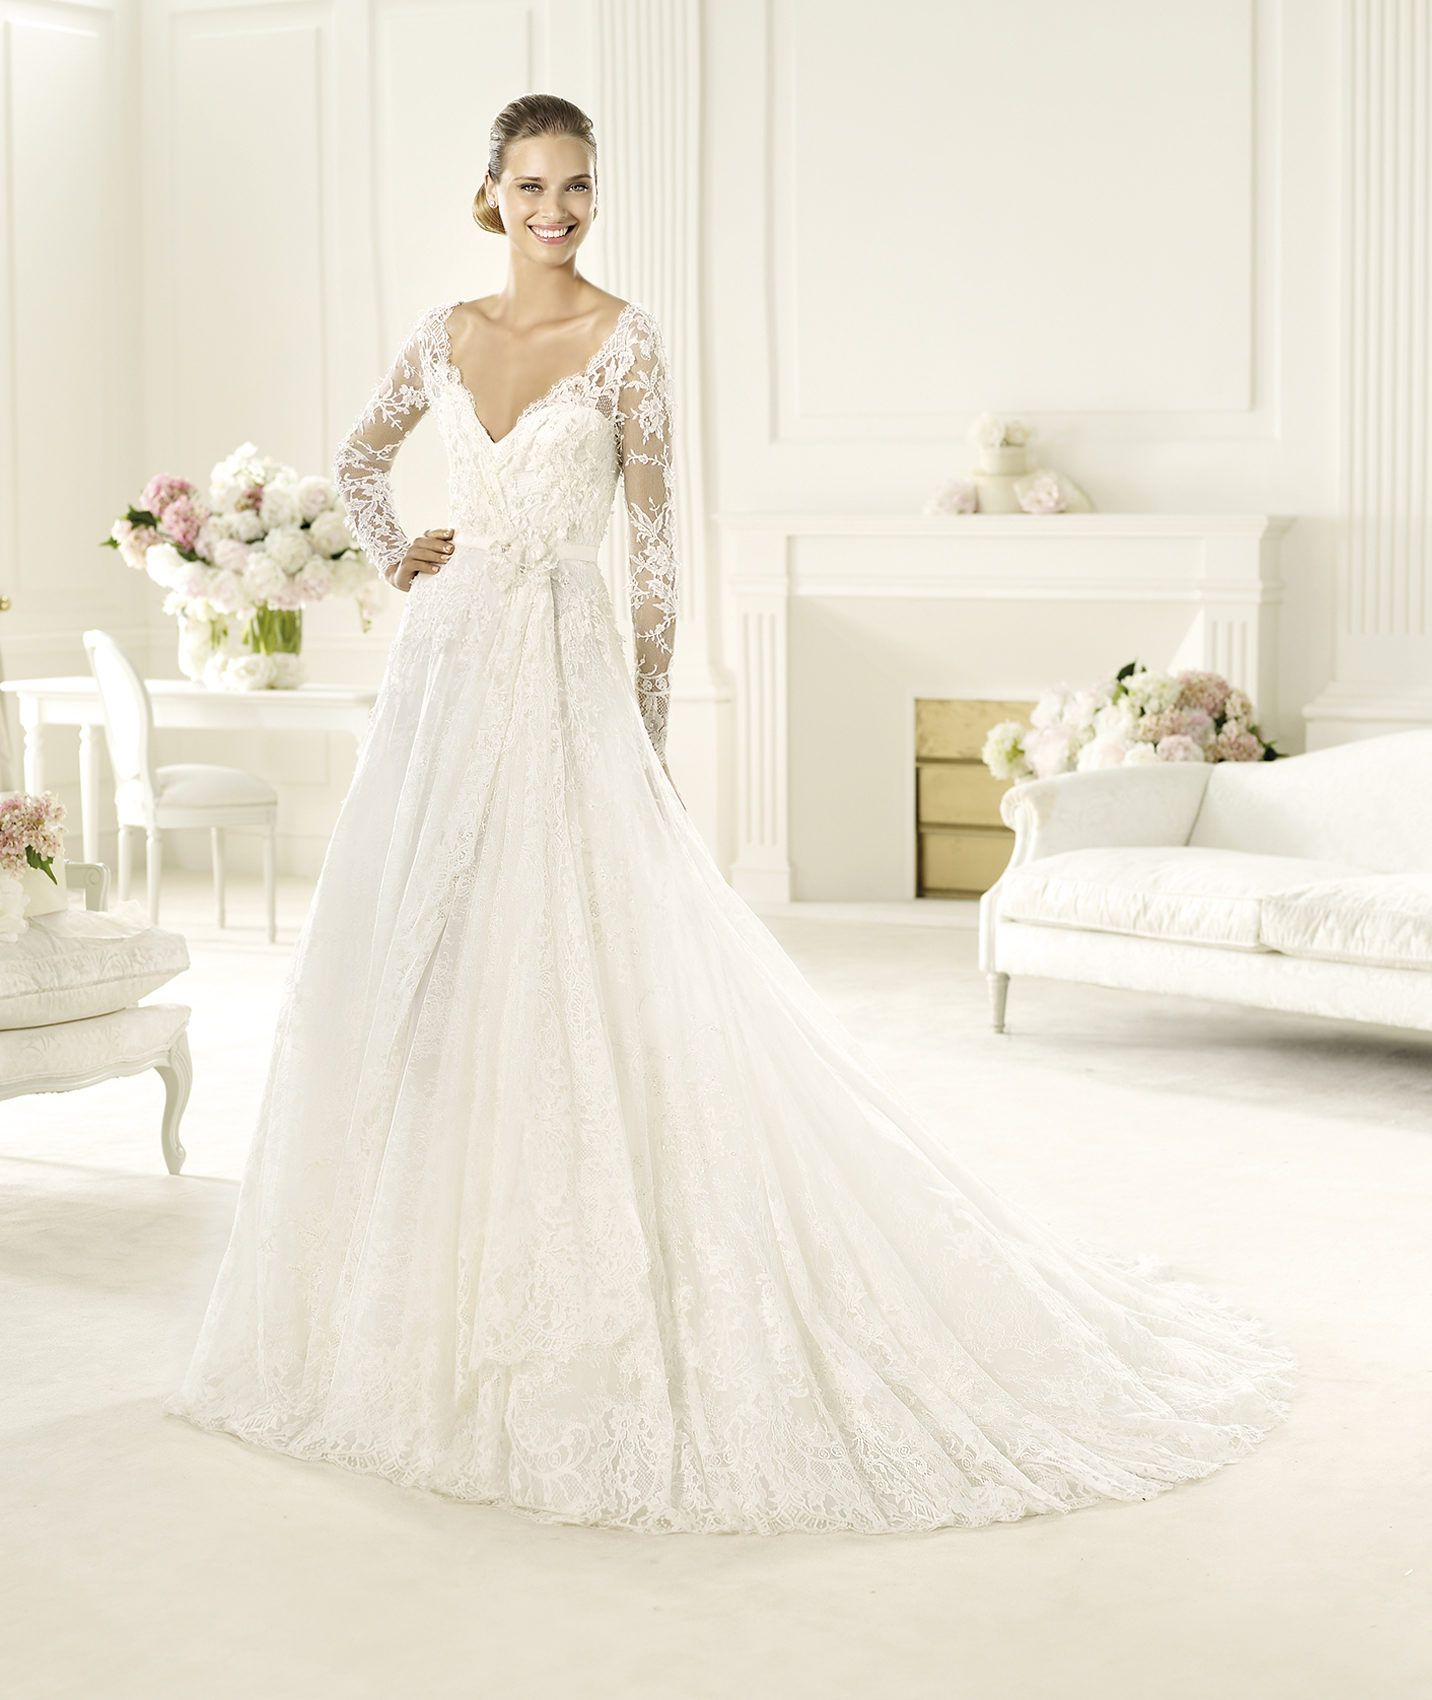 Elie Saab Wedding Dress 2014 Pronovias Bridal | 2014 Wedding Dresses ...